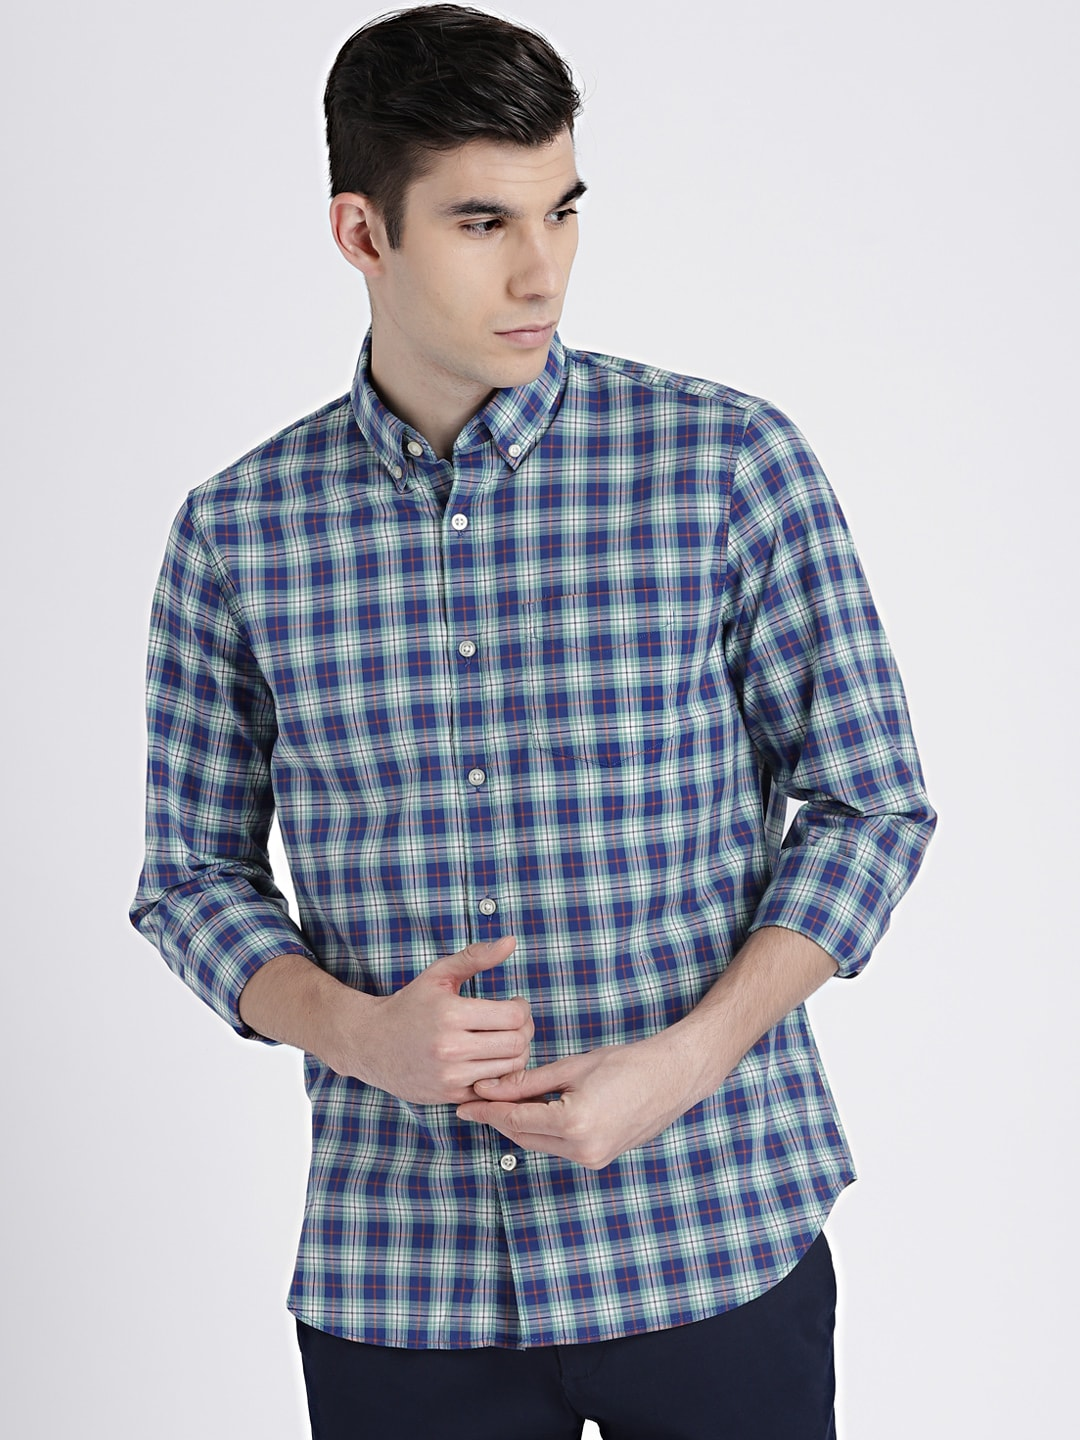 2a70978b1f GAP Shirts - Buy GAP Shirt Online in India at Best Price